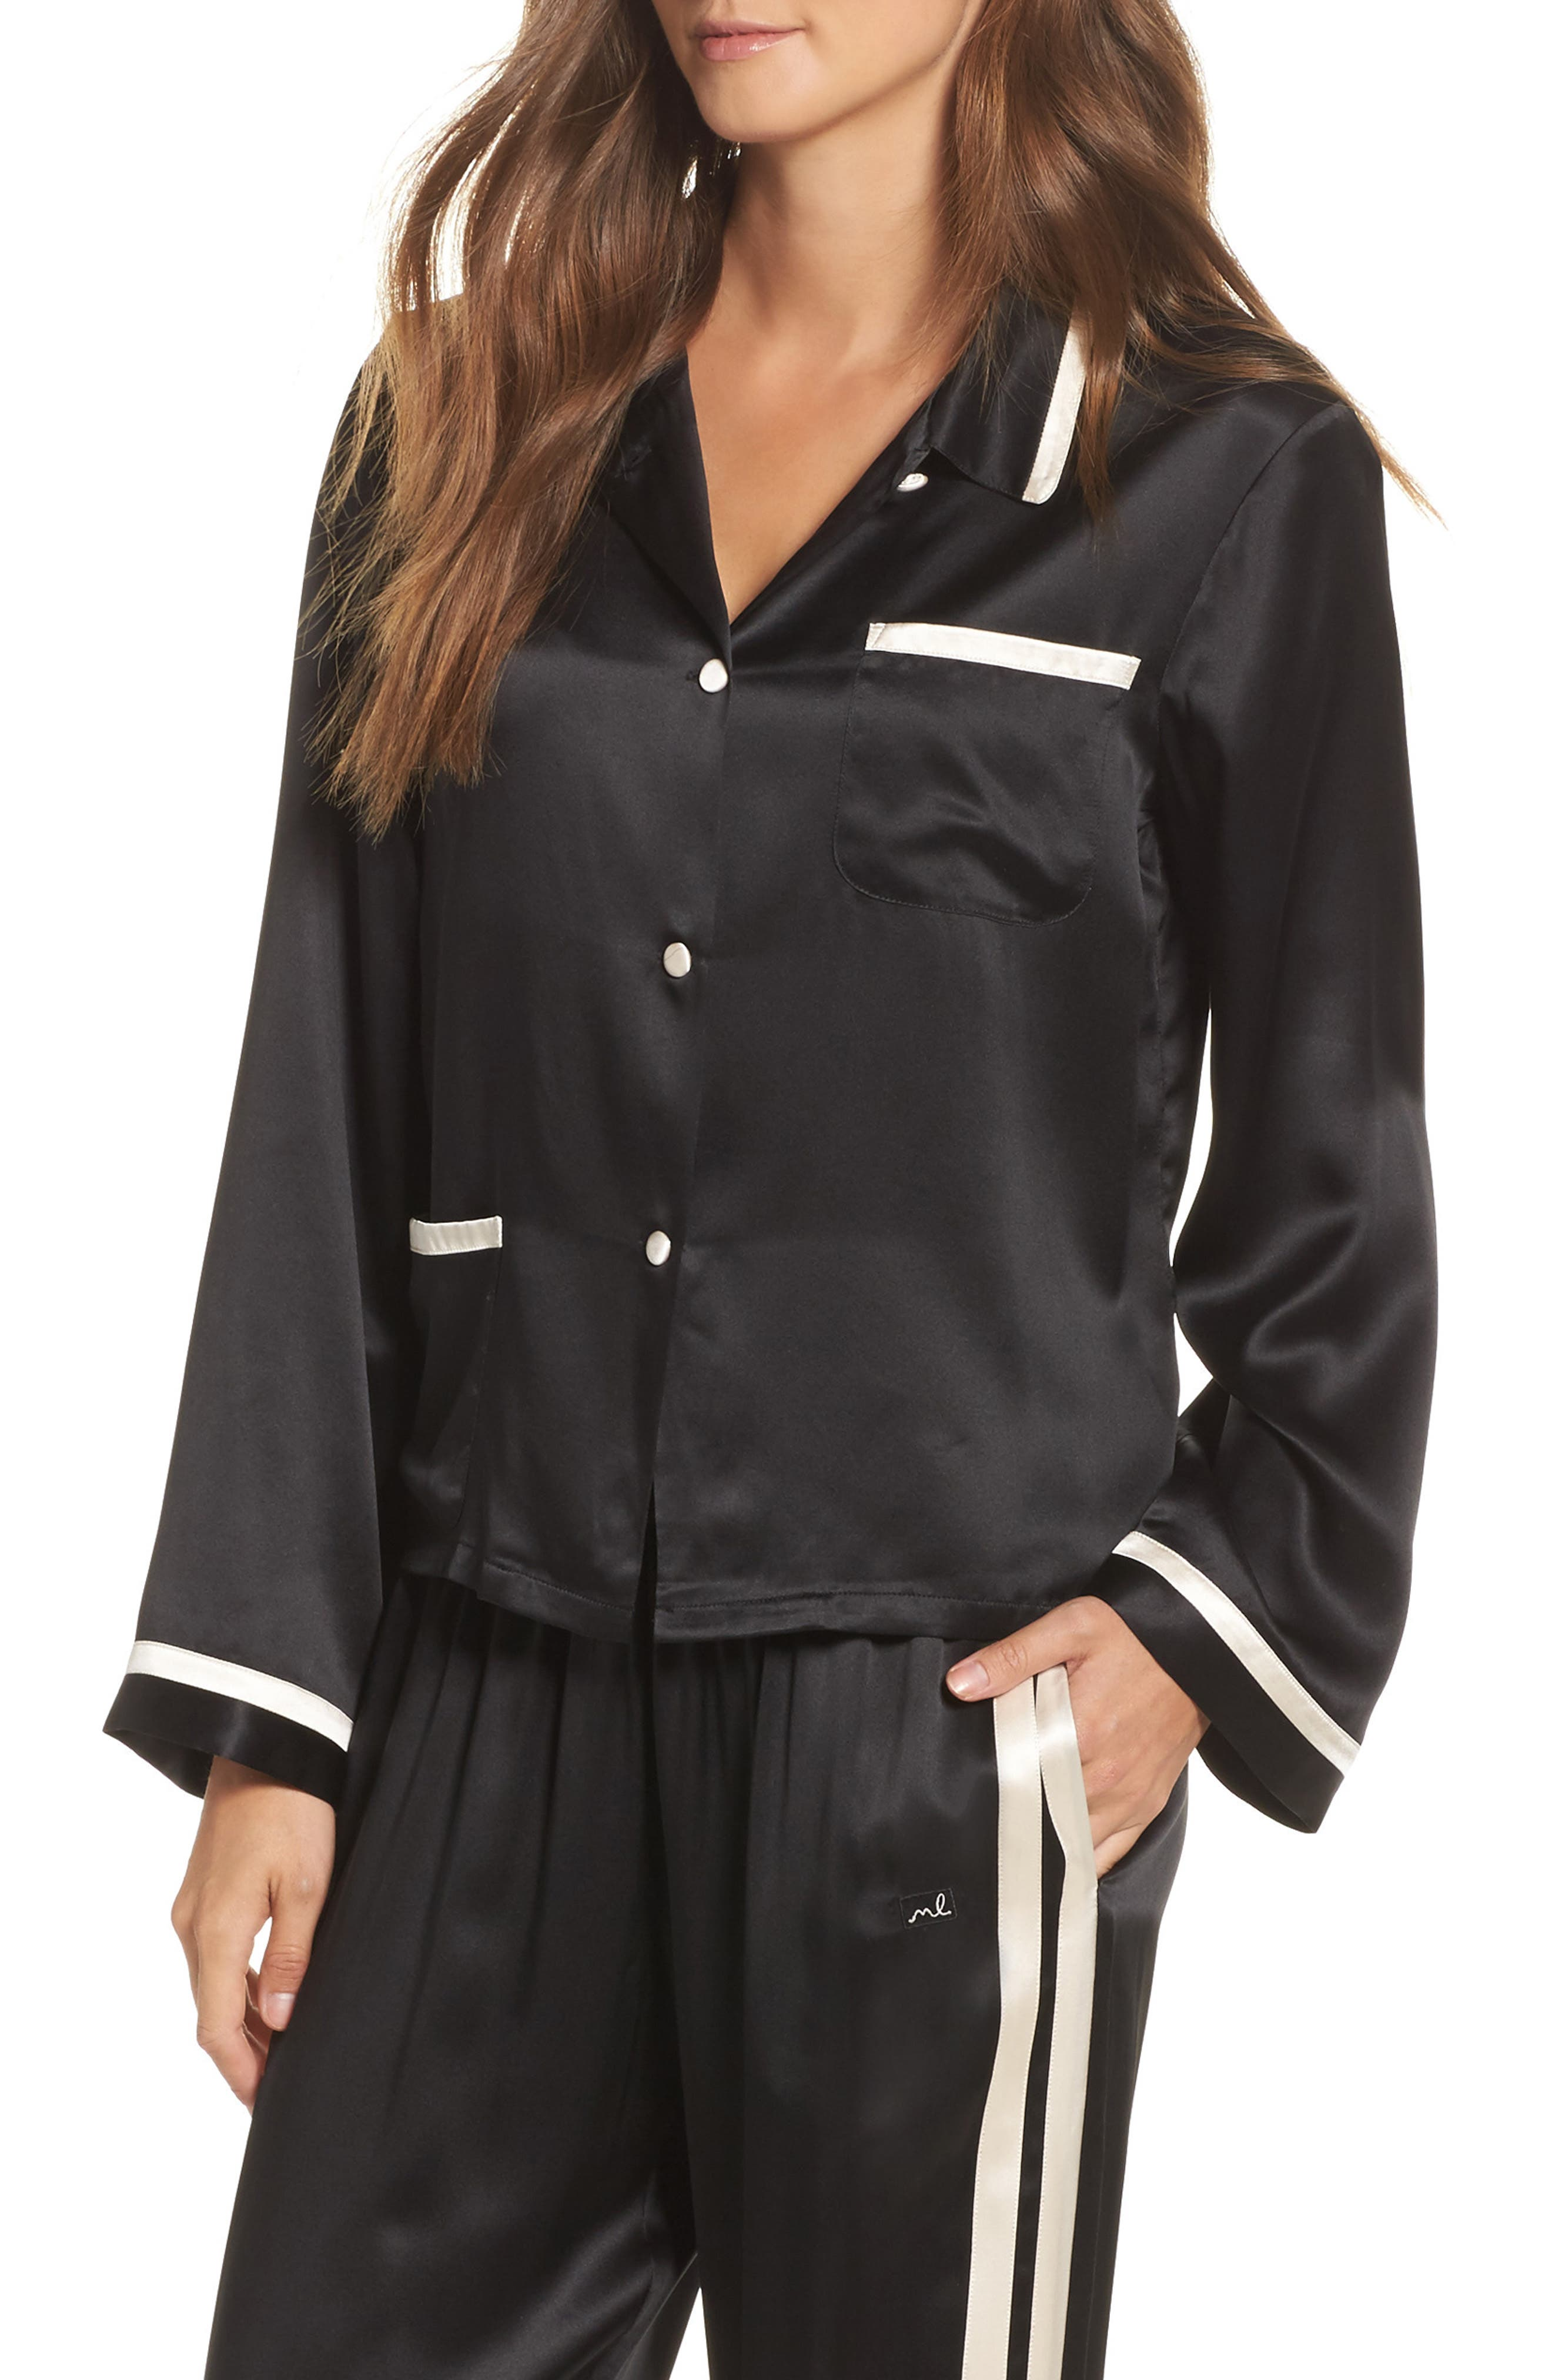 Ruthie Silk Charmeuse Pajama Top,                             Main thumbnail 1, color,                             Noir/ Vanilla